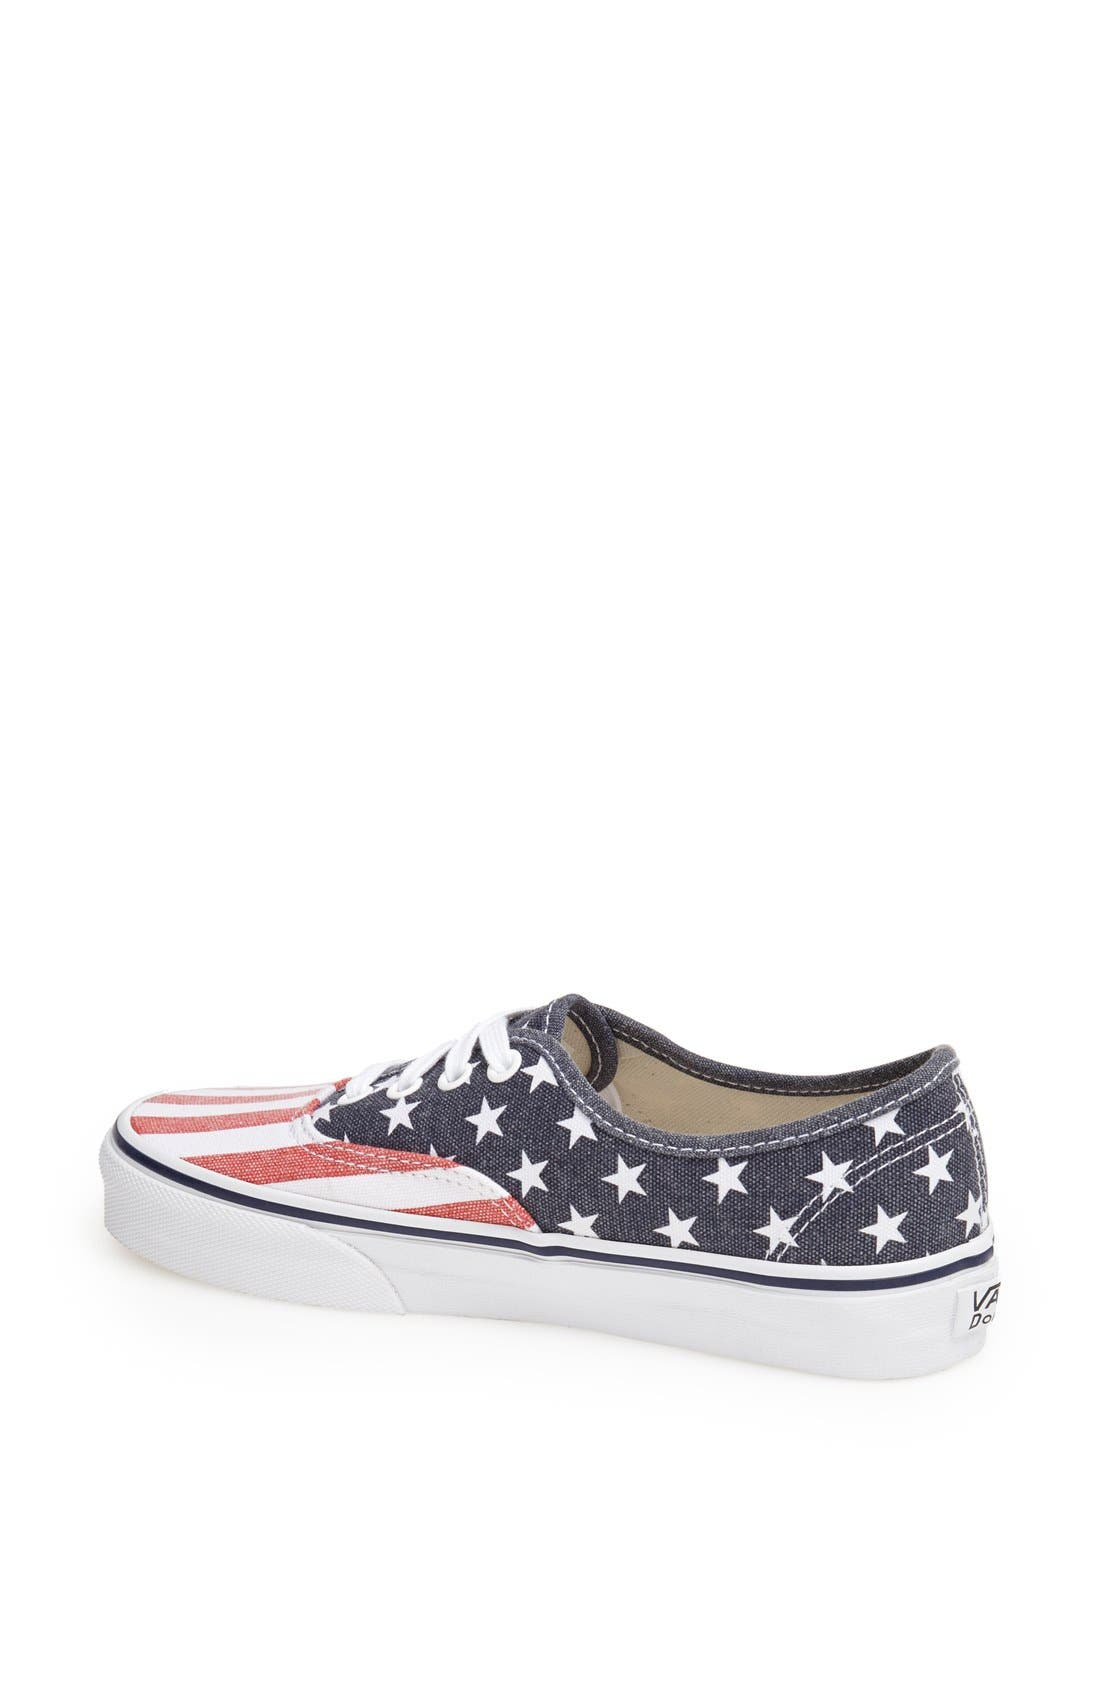 Alternate Image 2  - Vans 'Van Doren - Authentic' Sneaker (Women)